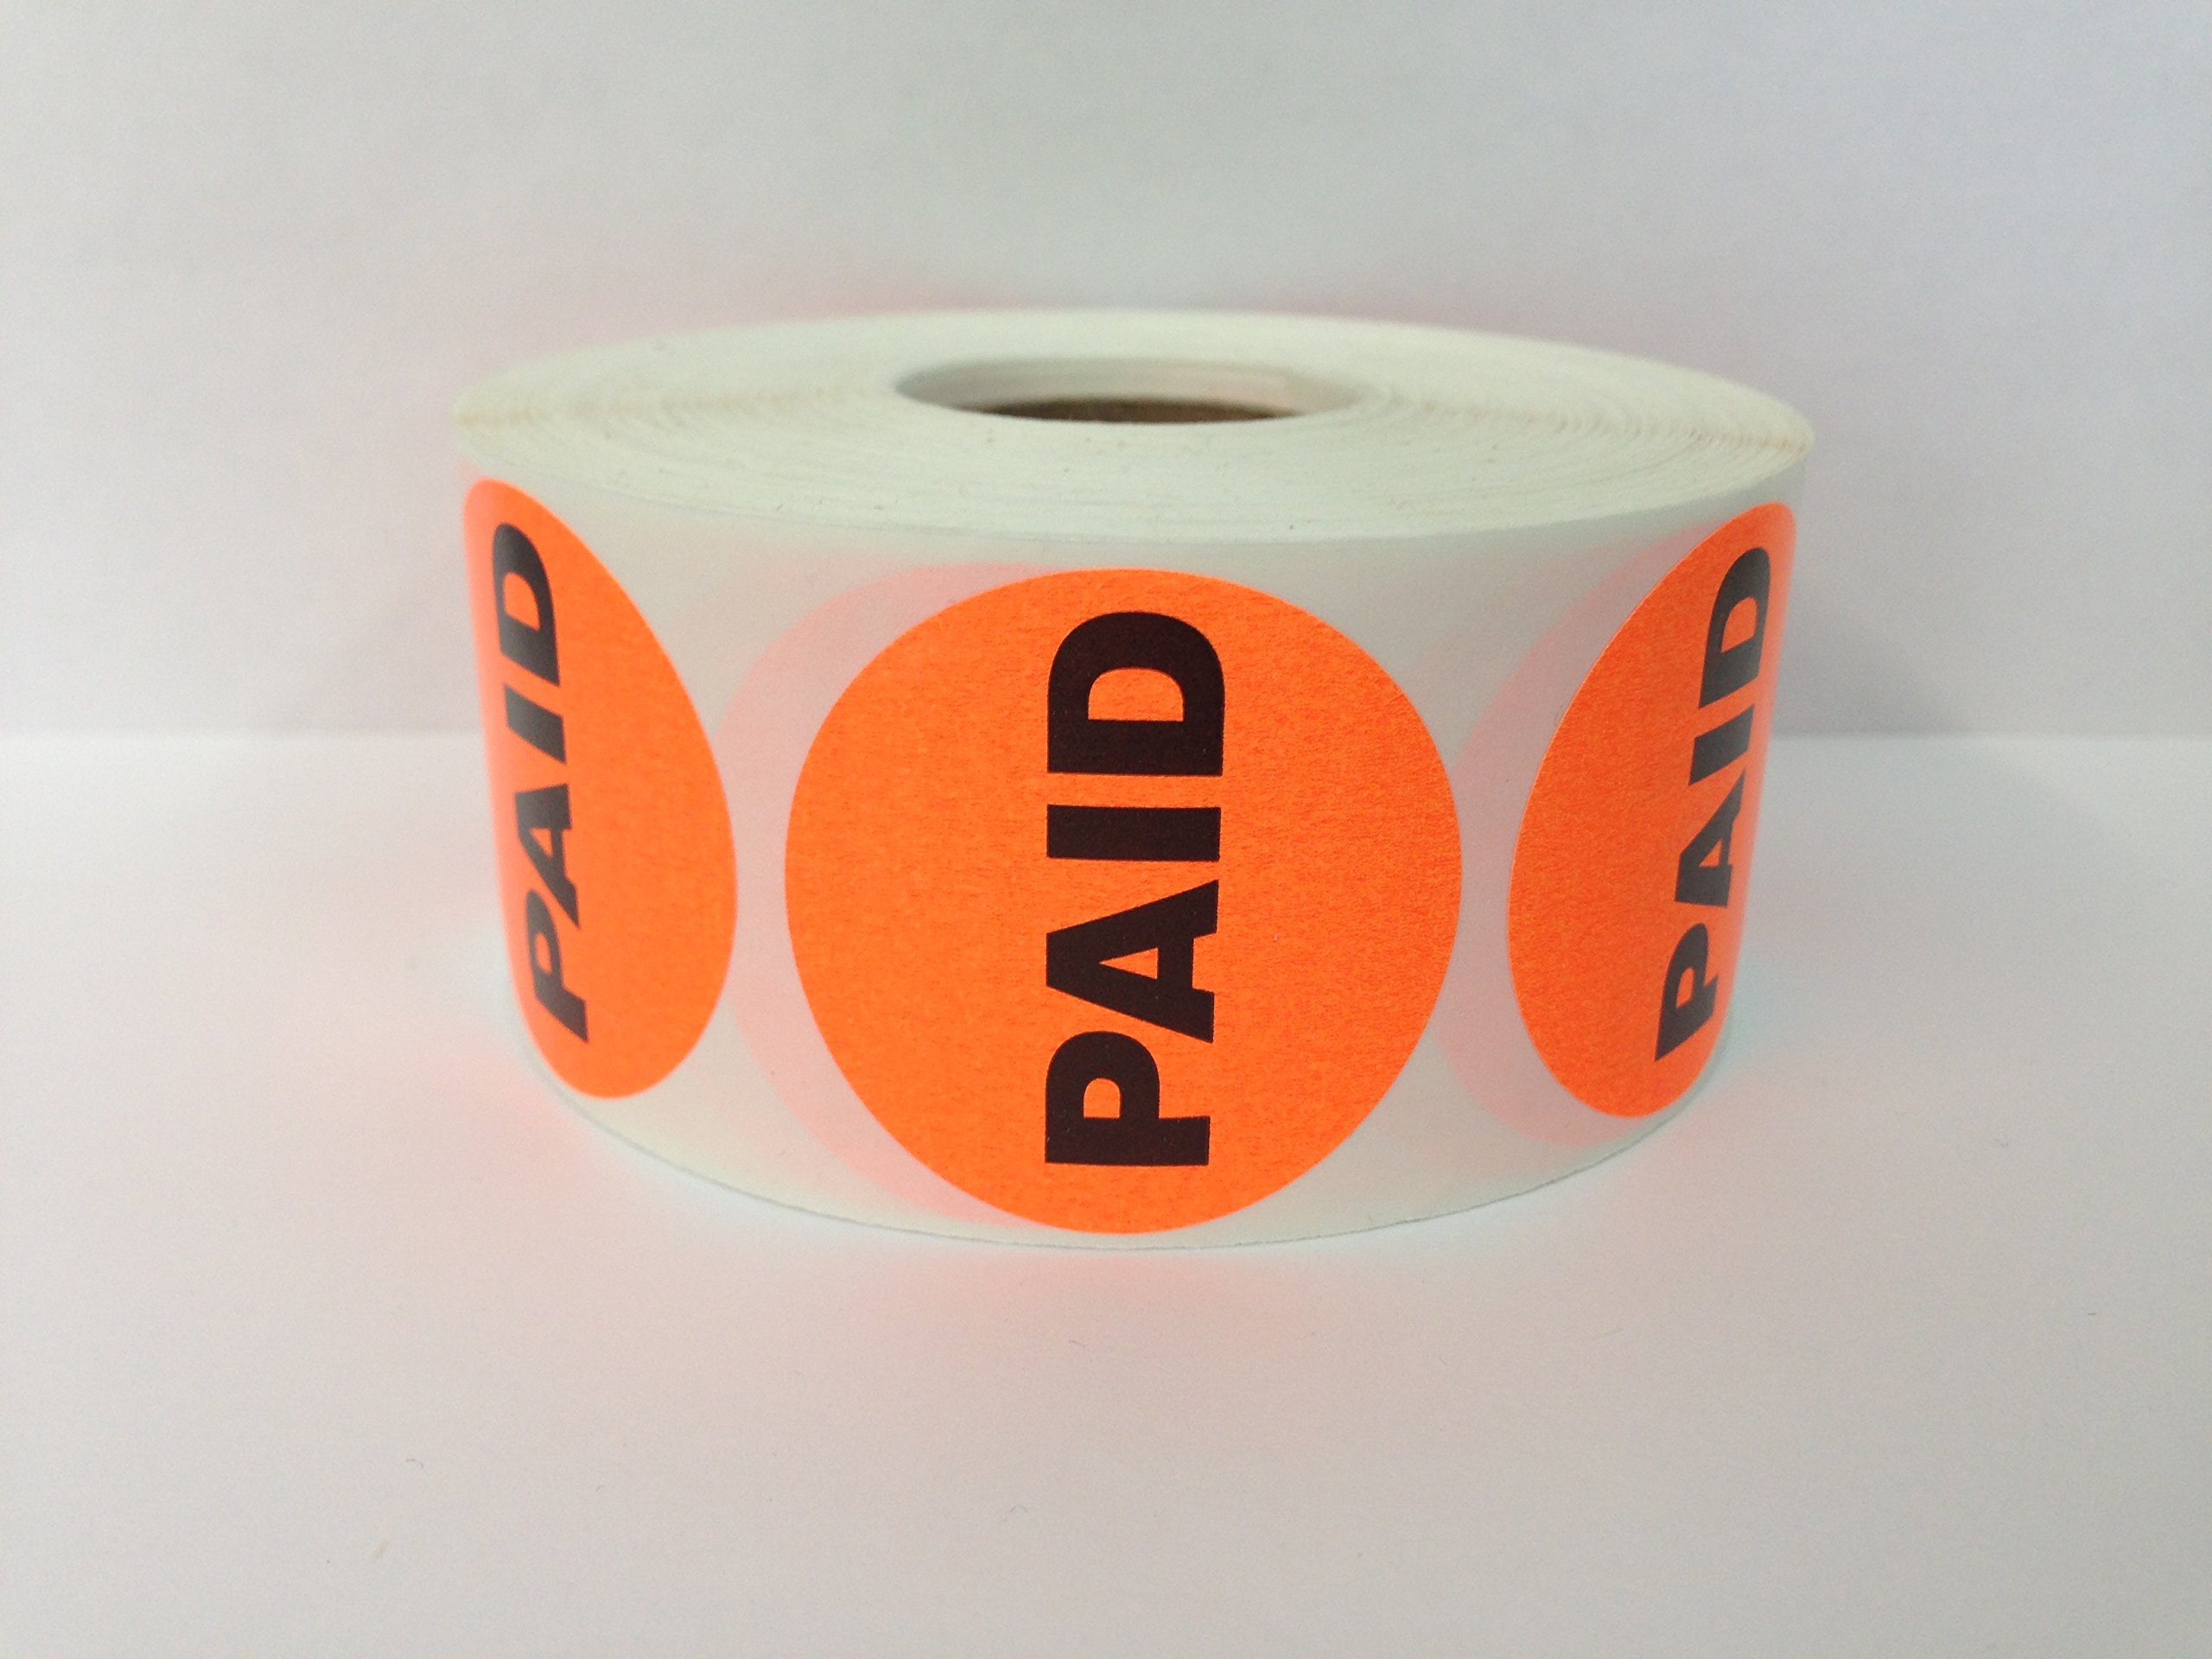 10,000 Labels 1.5'' Round Orange PAID Pricing Price Point Retail Stickers 10 Rolls